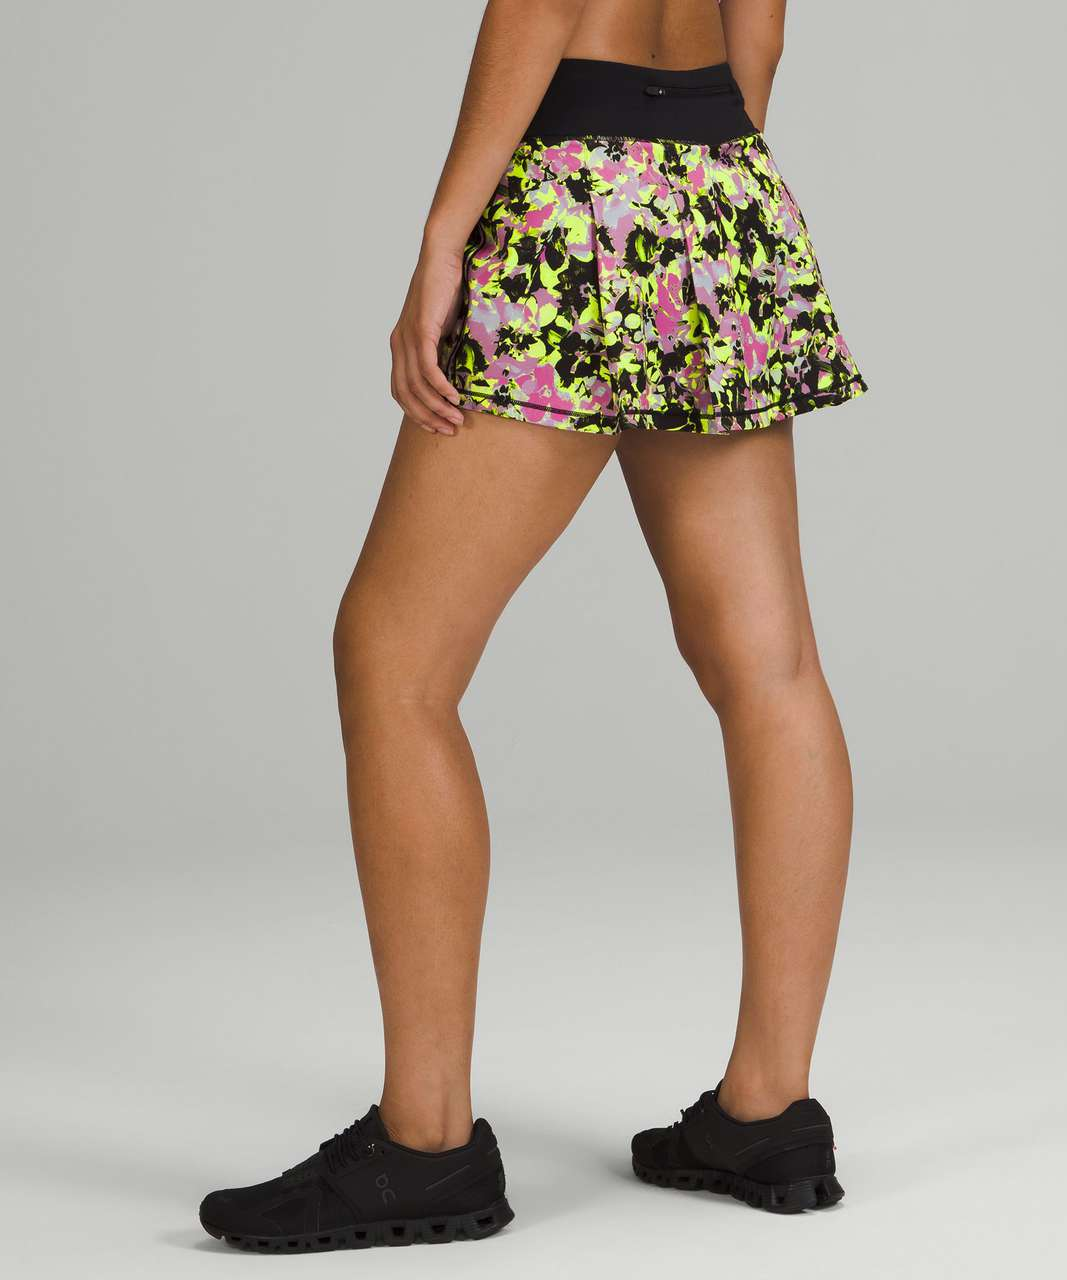 Lululemon Pace Rival Mid-Rise Skirt - Inflected Highlight Yellow Multi / Black